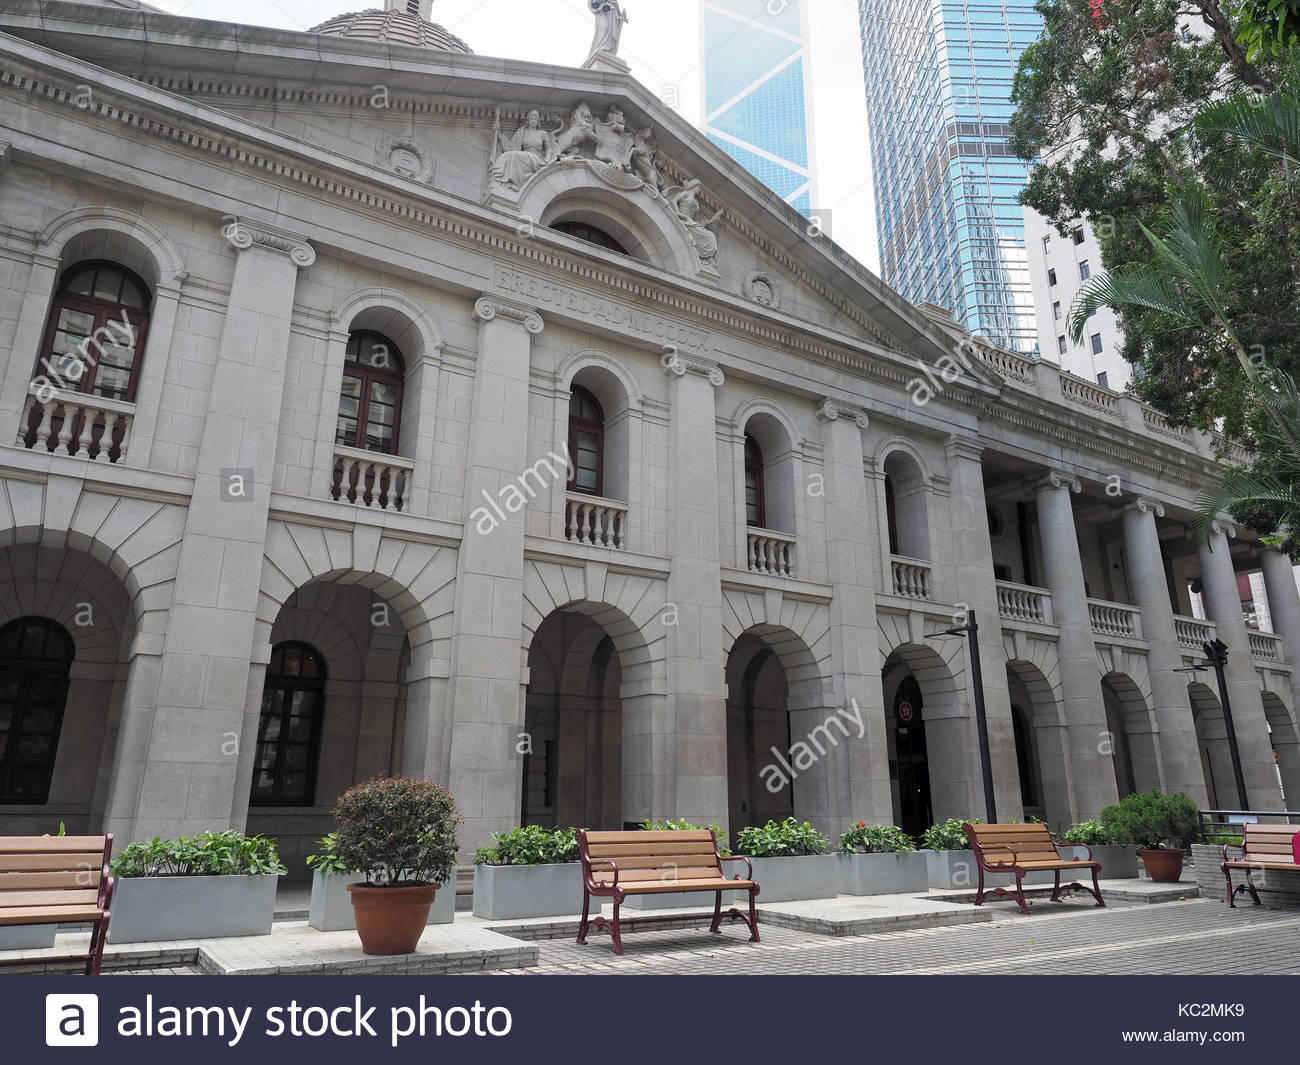 View of the Court of Final Appeal in Hong Kong - Stock Image